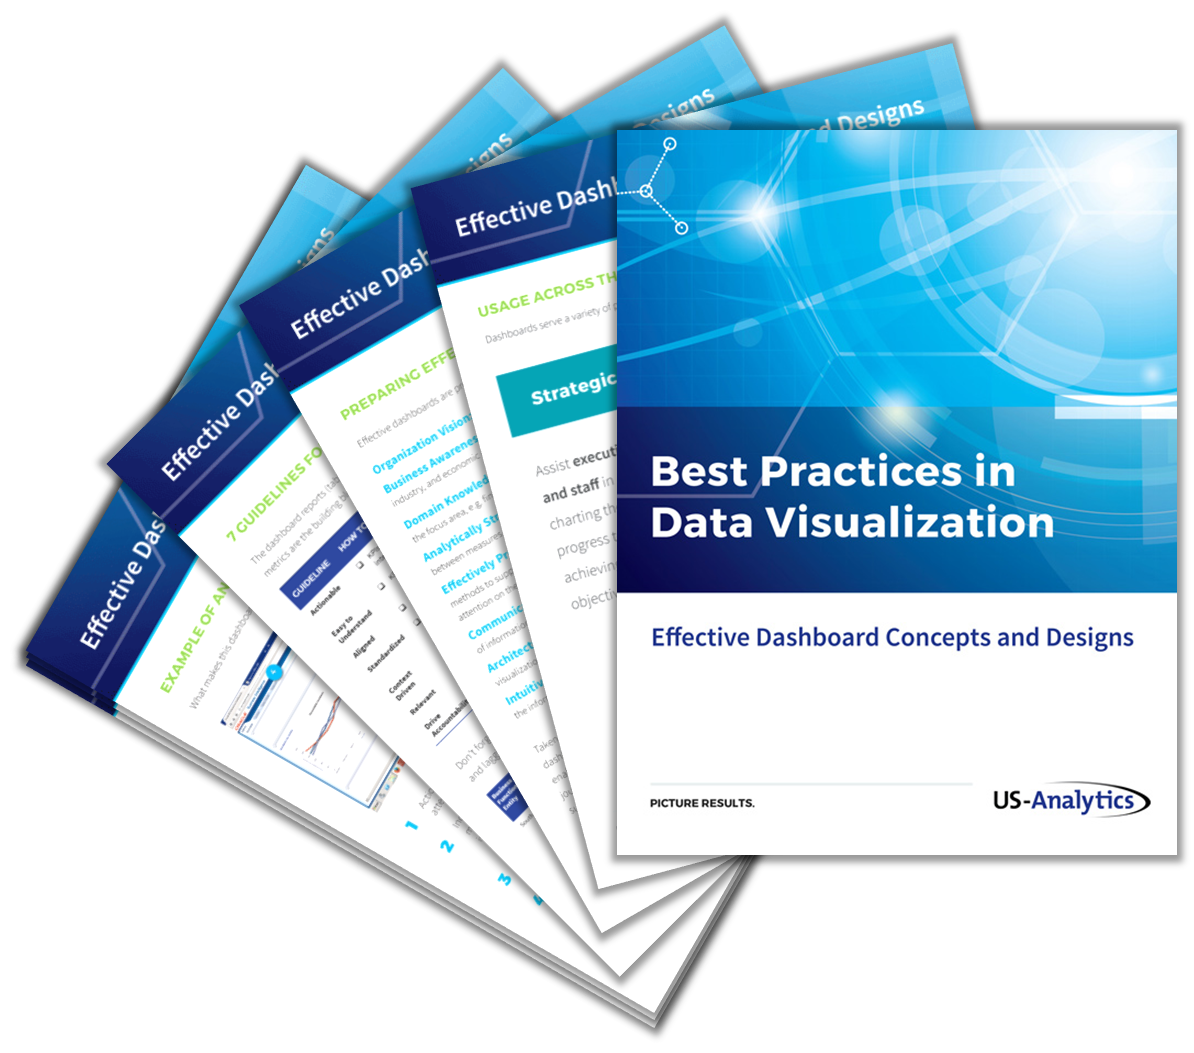 Best_Practices_in_Data_Visualization_White_Paper_Cover_Image.png